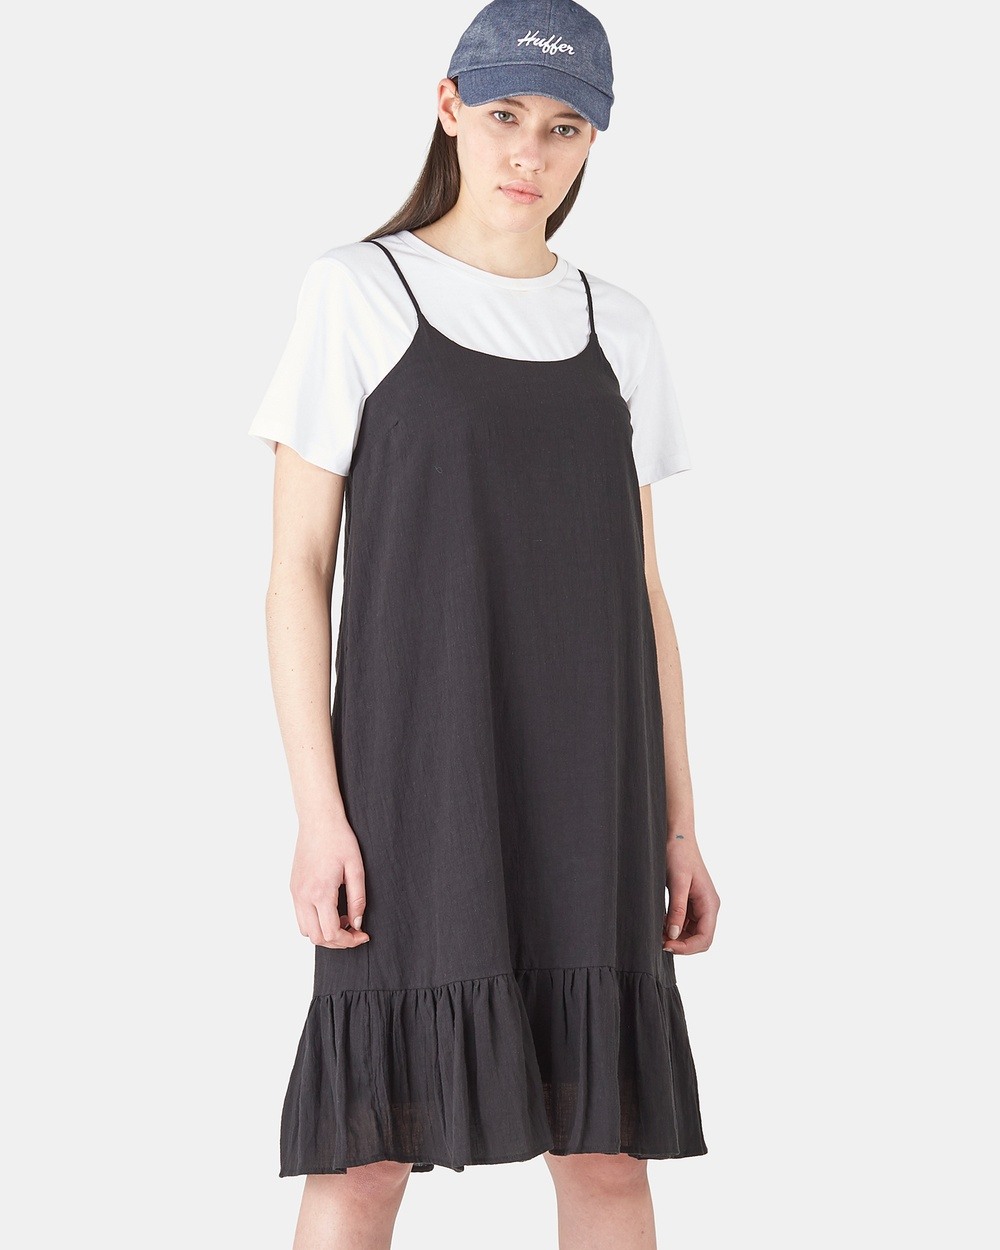 Huffer BLACK Georgia Dress